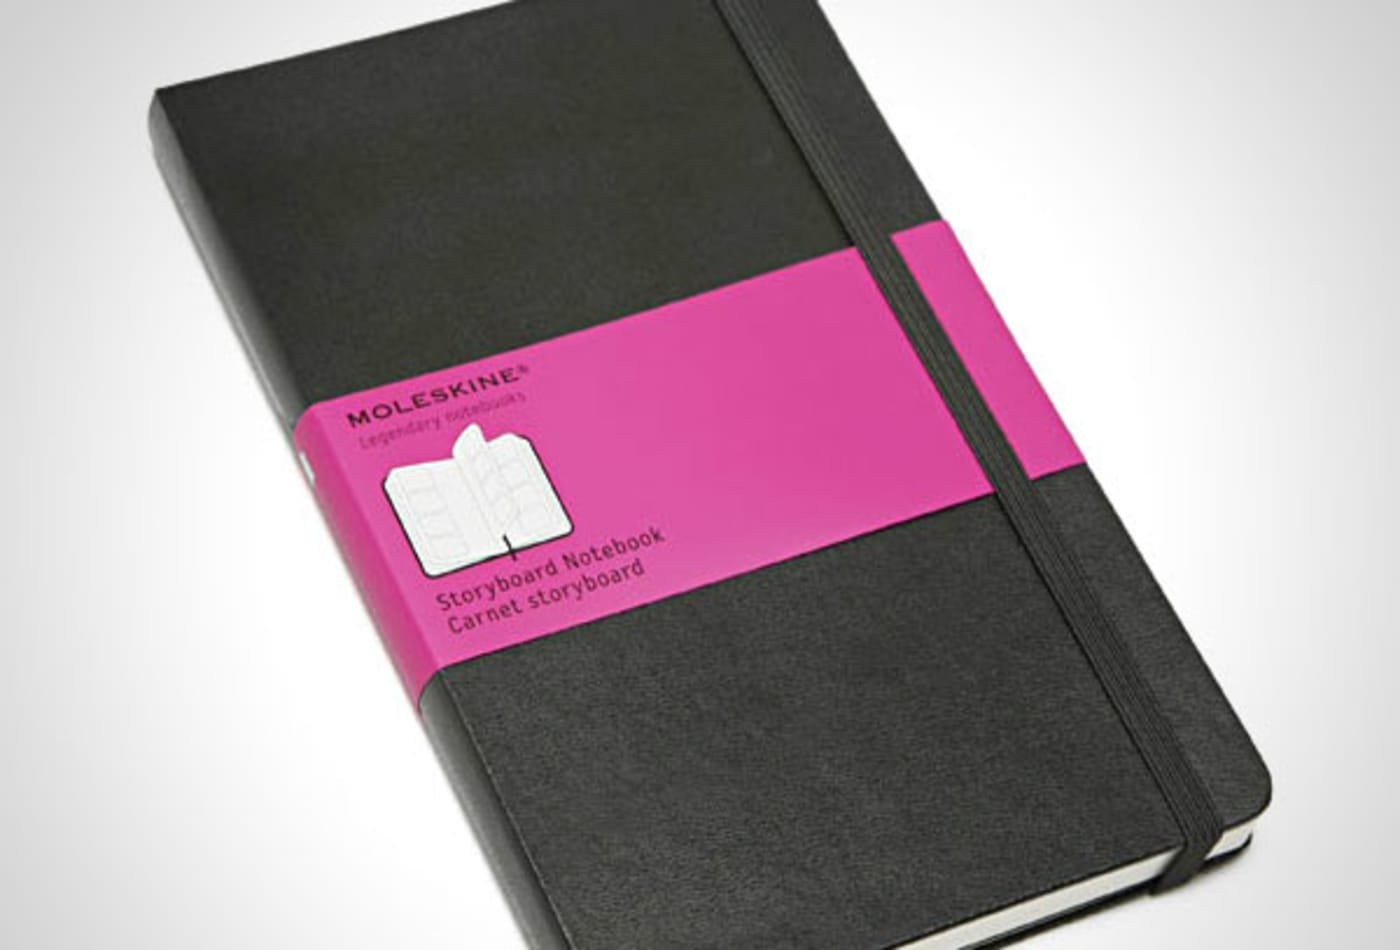 CNBC-Holiday-gifts-for-her-2011-moleskin.jpg